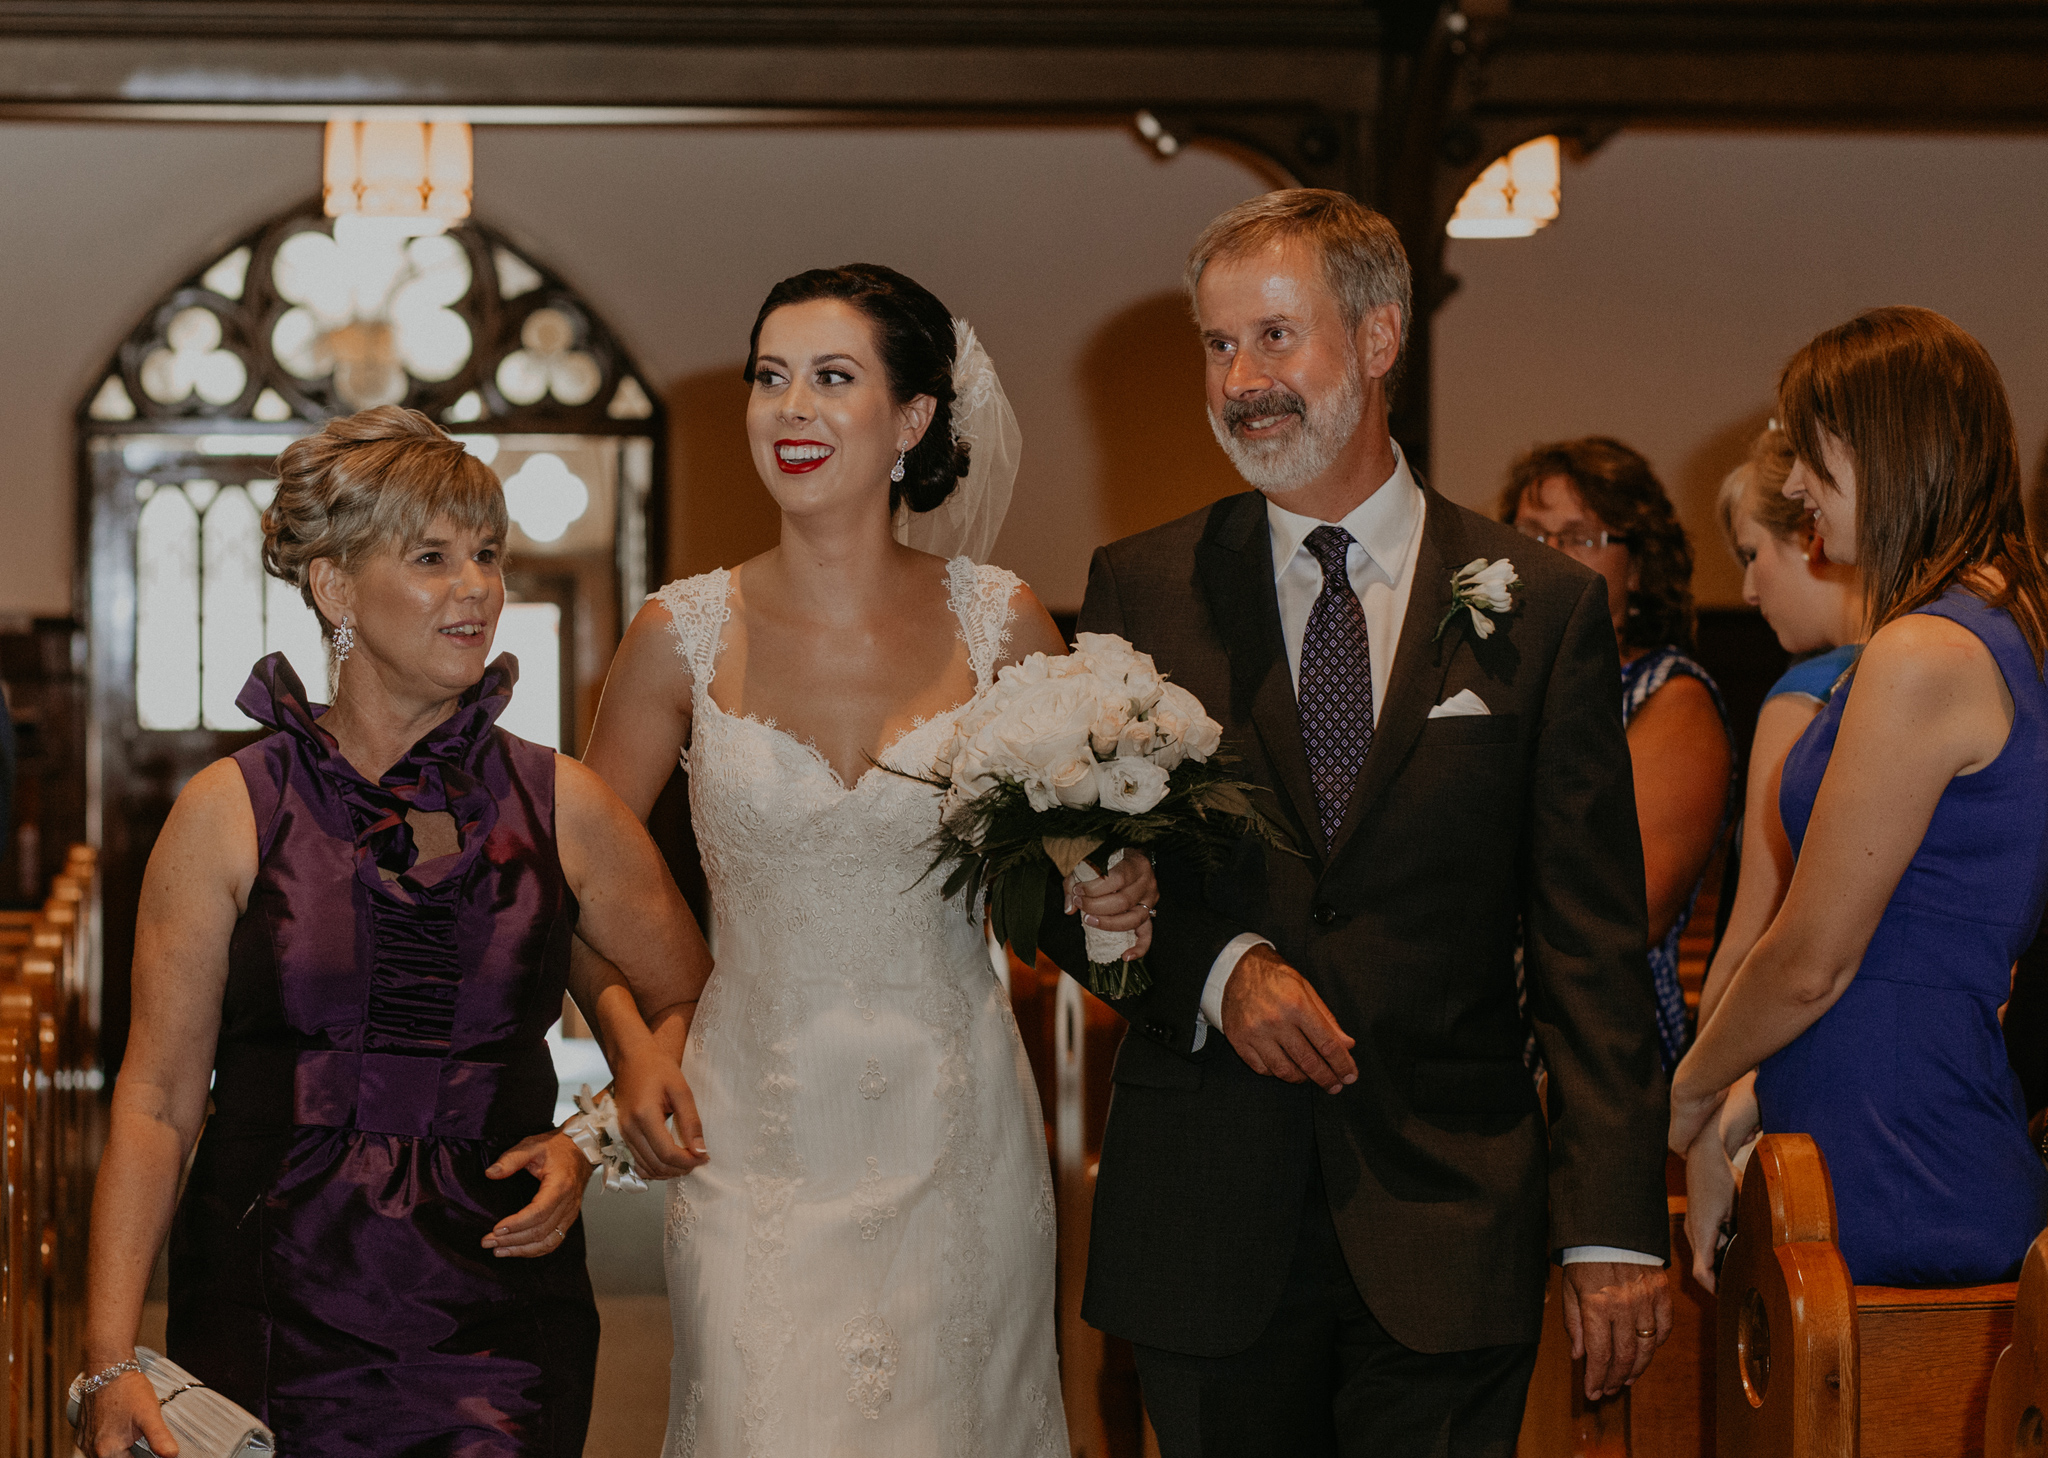 Bride walks up aisle with mom and dad during church ceremony